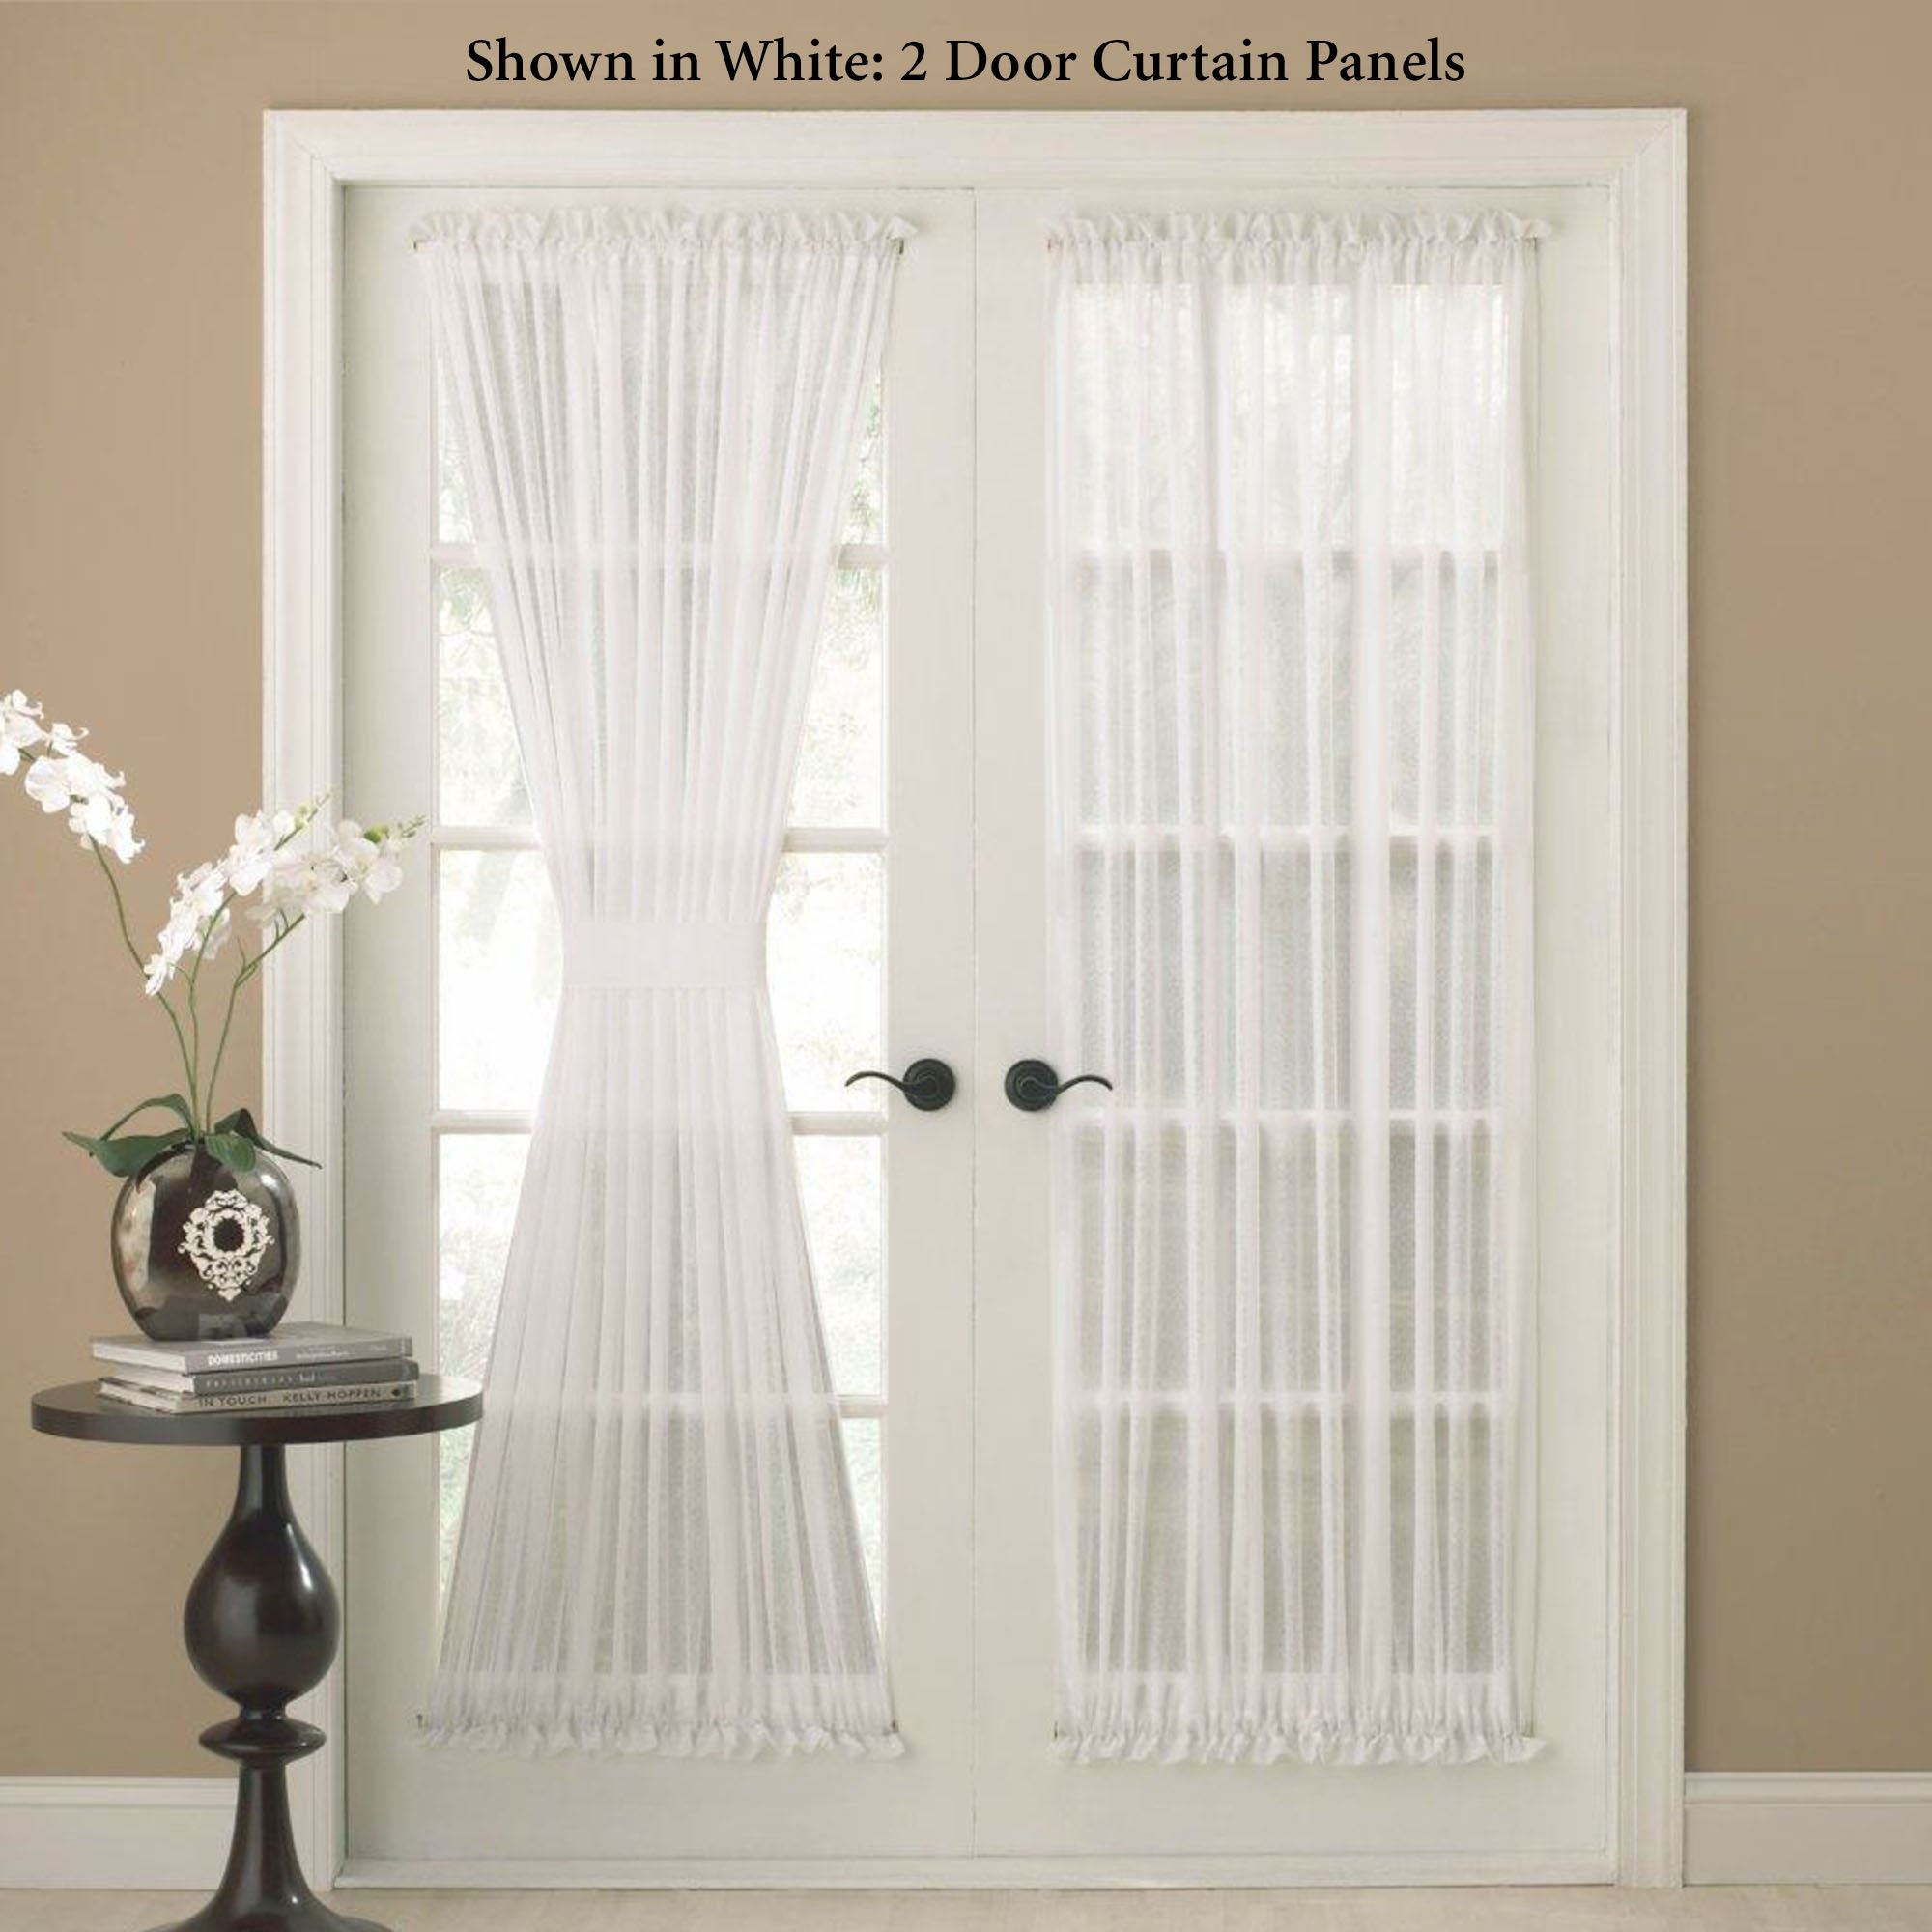 Reverie Semi Sheer Door Panel & Reverie Snow Voile Semi Sheer Door Panels